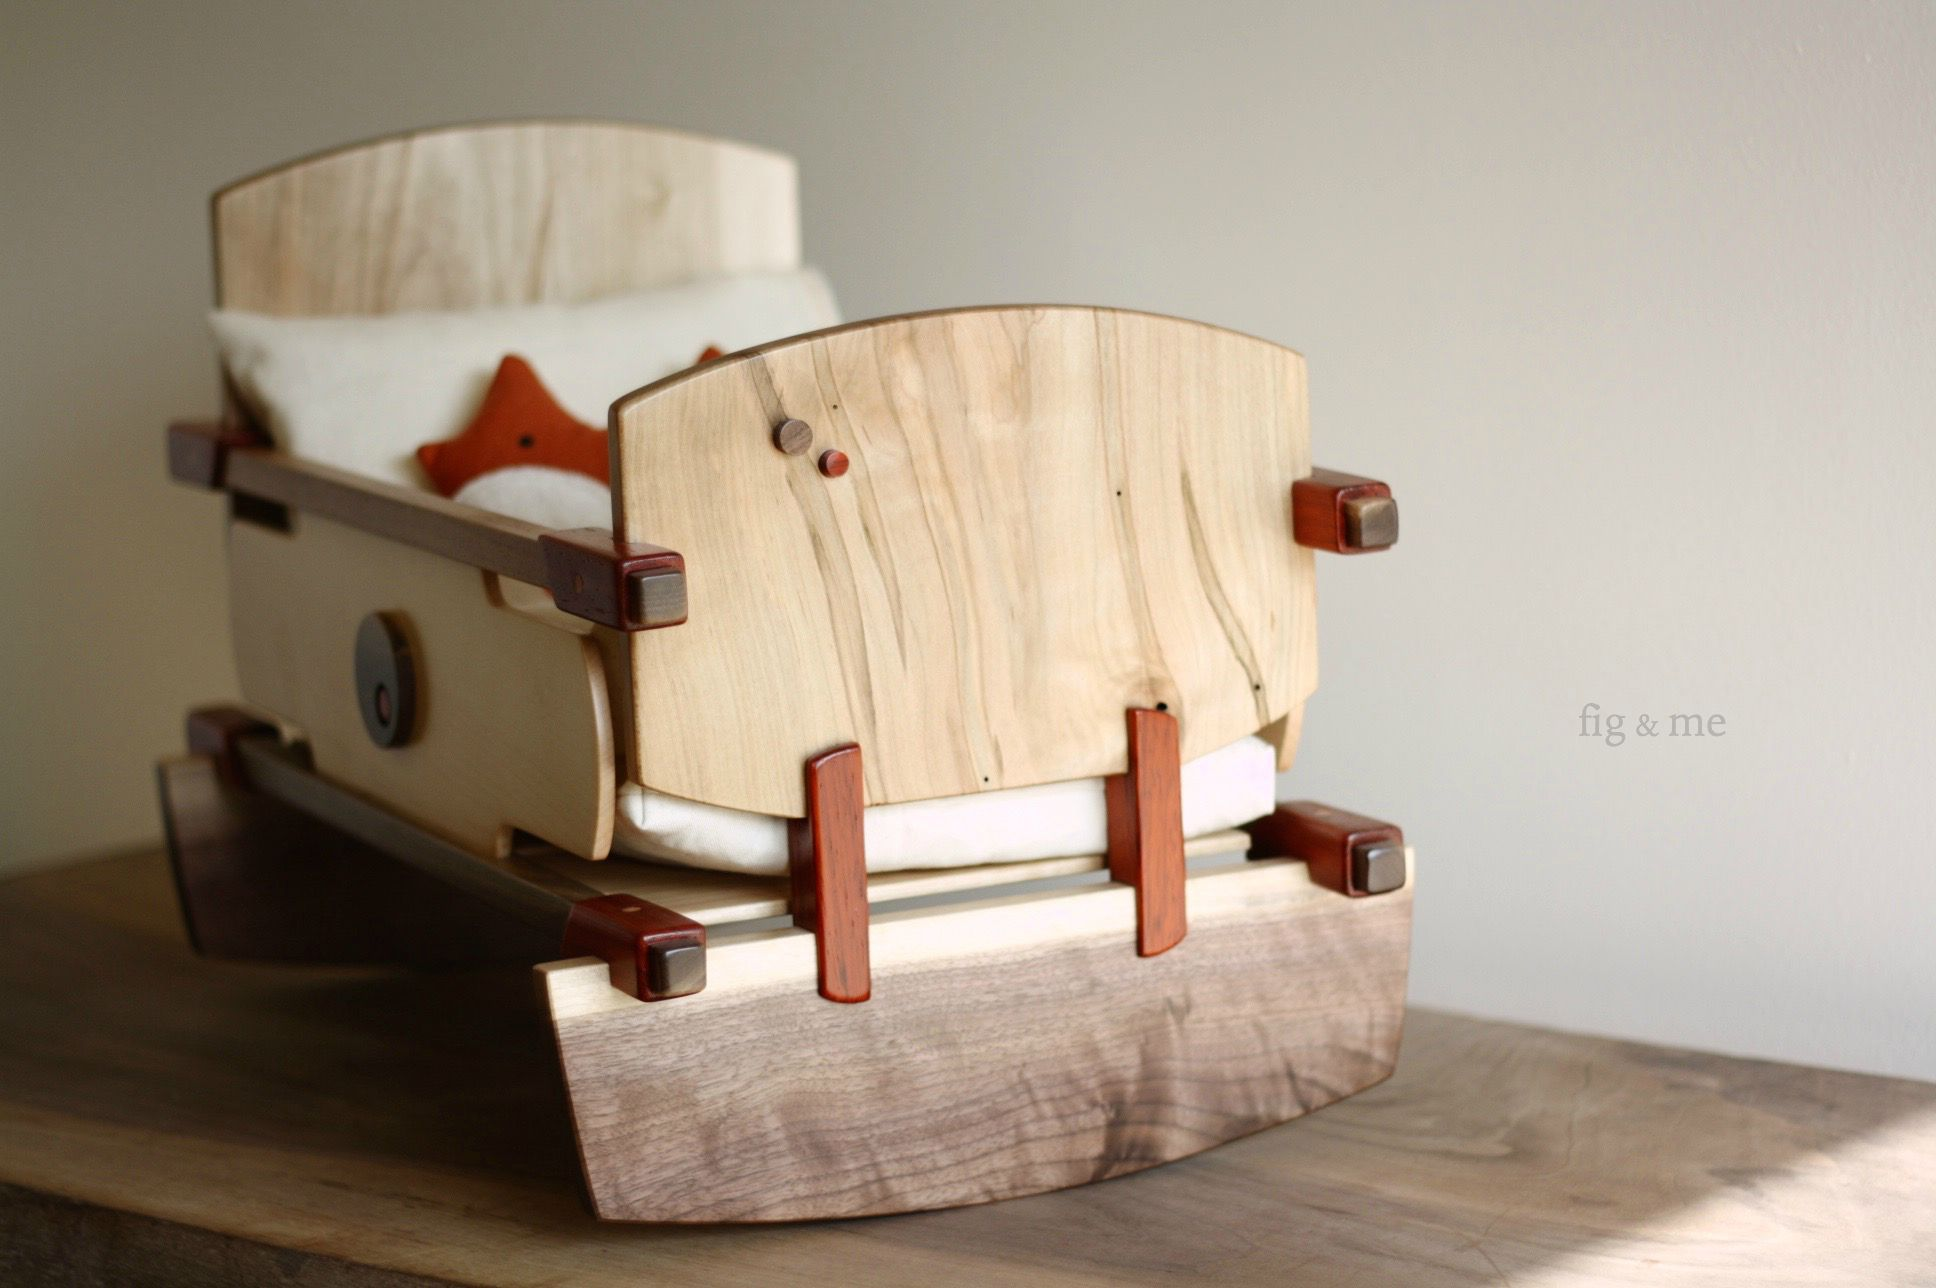 Wooden doll crib by Fig and me